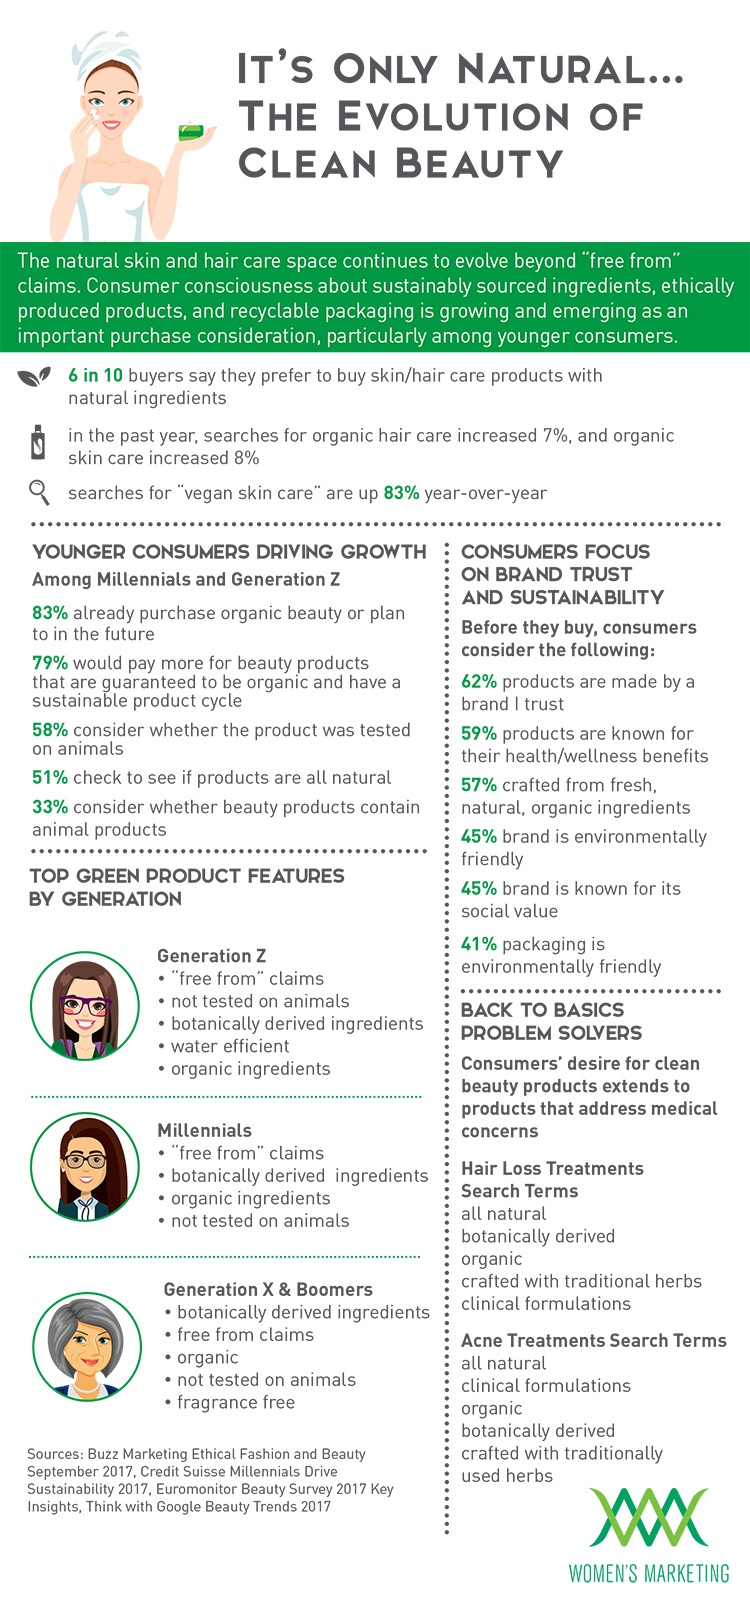 EvolutionofCleanBeauty_Infographic-1.jpg